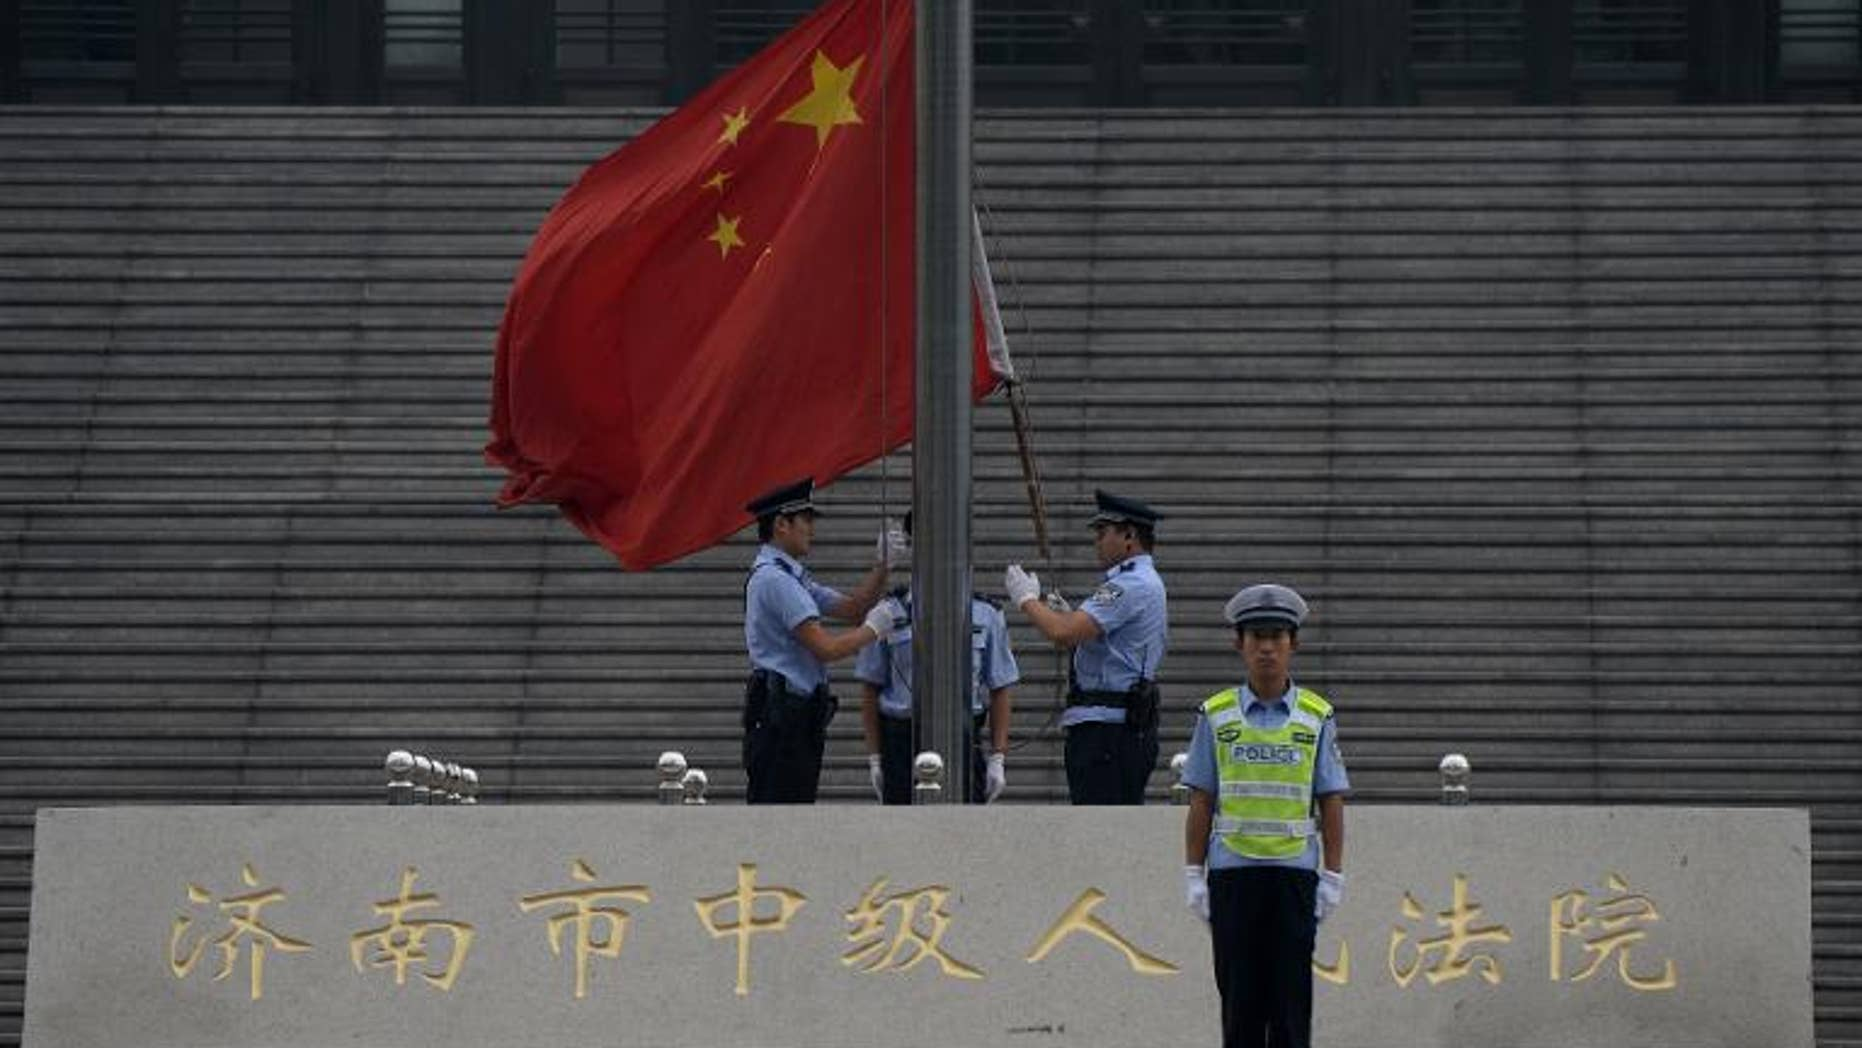 Police raise the Chinese flag outside the Intermediate People's Court in Jinan, Shandong Province on September 22, 2013